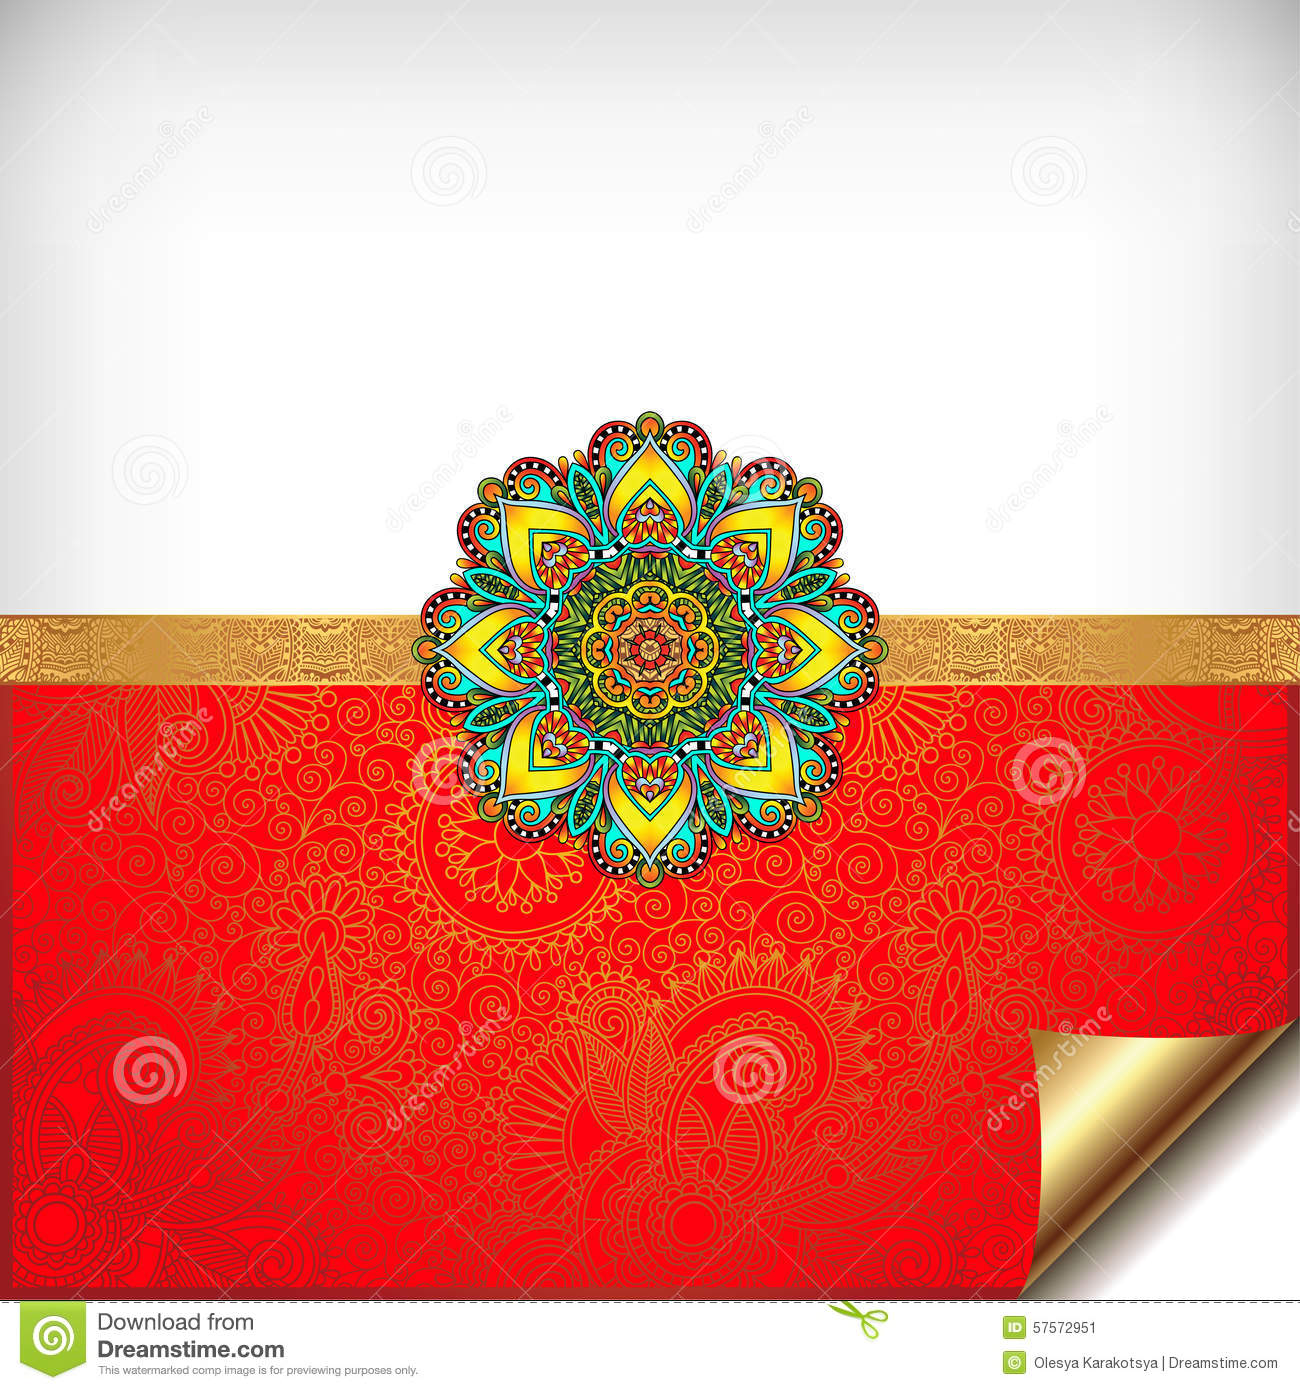 Gold and red happy rakhi greeting card stock vector illustration download gold and red happy rakhi greeting card stock vector illustration of artistic event m4hsunfo